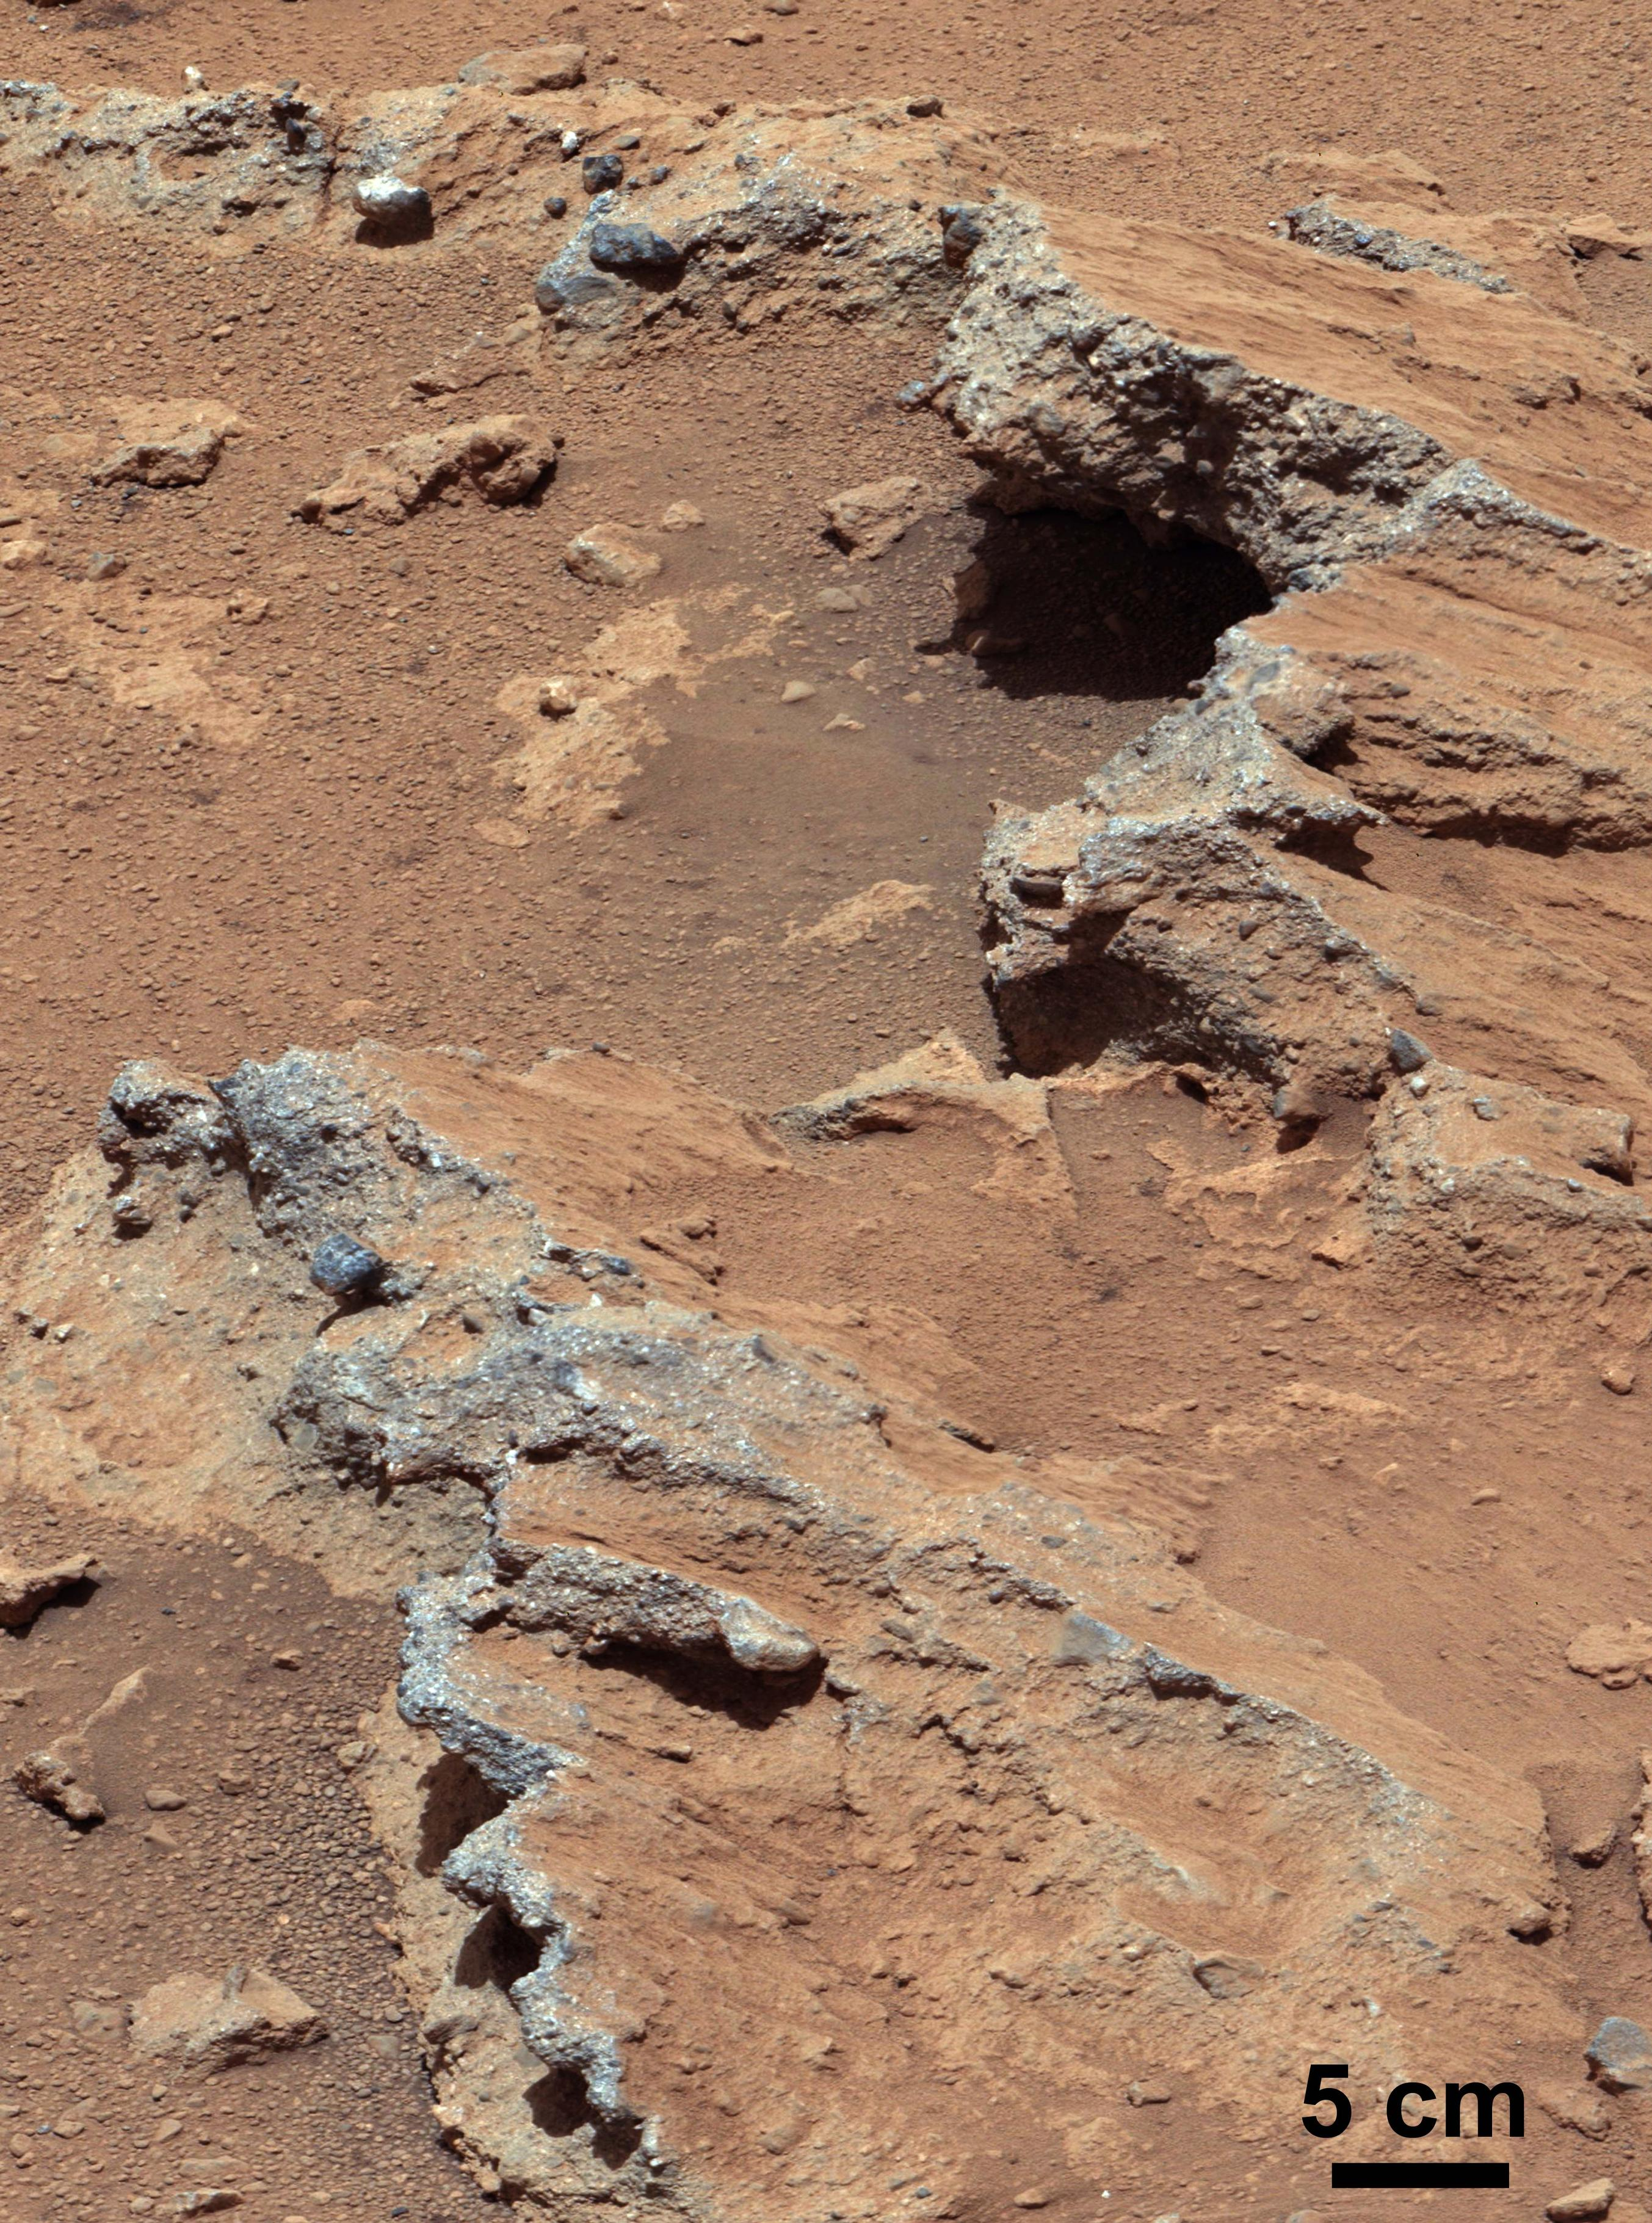 Remnants of Ancient Streambed on Mars (White-Balanced View)